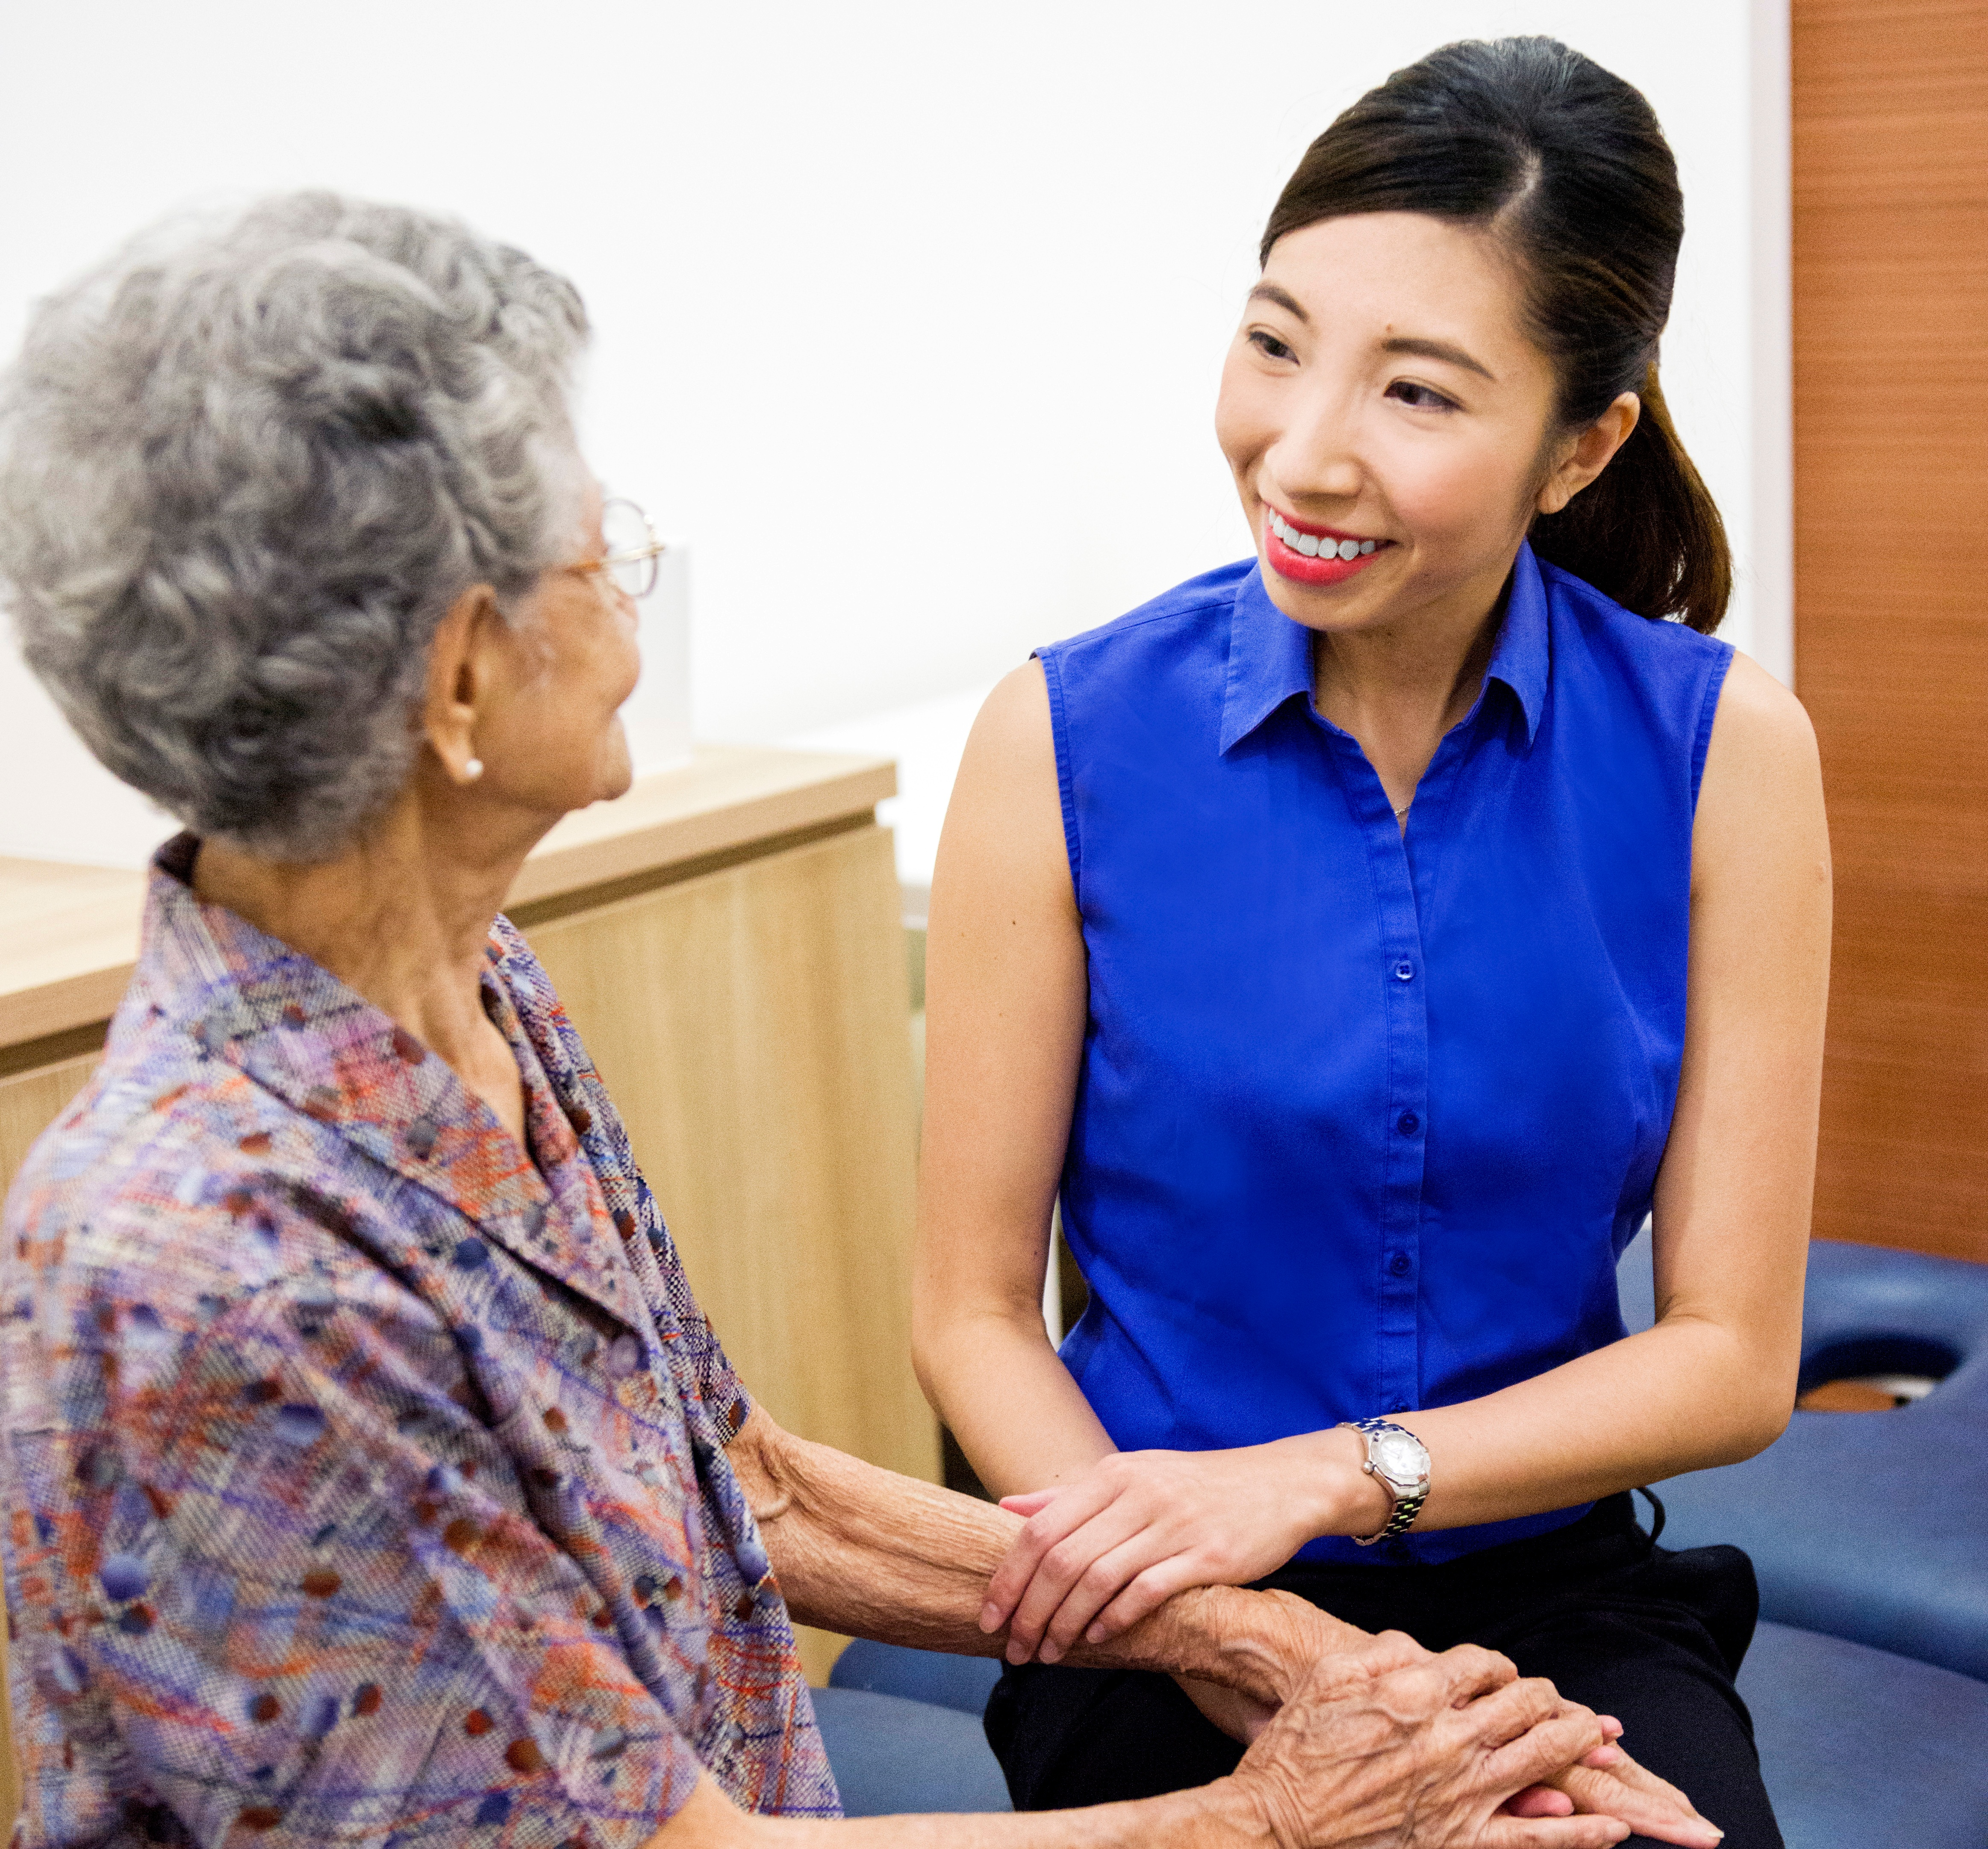 Therapist helps people with talking problems